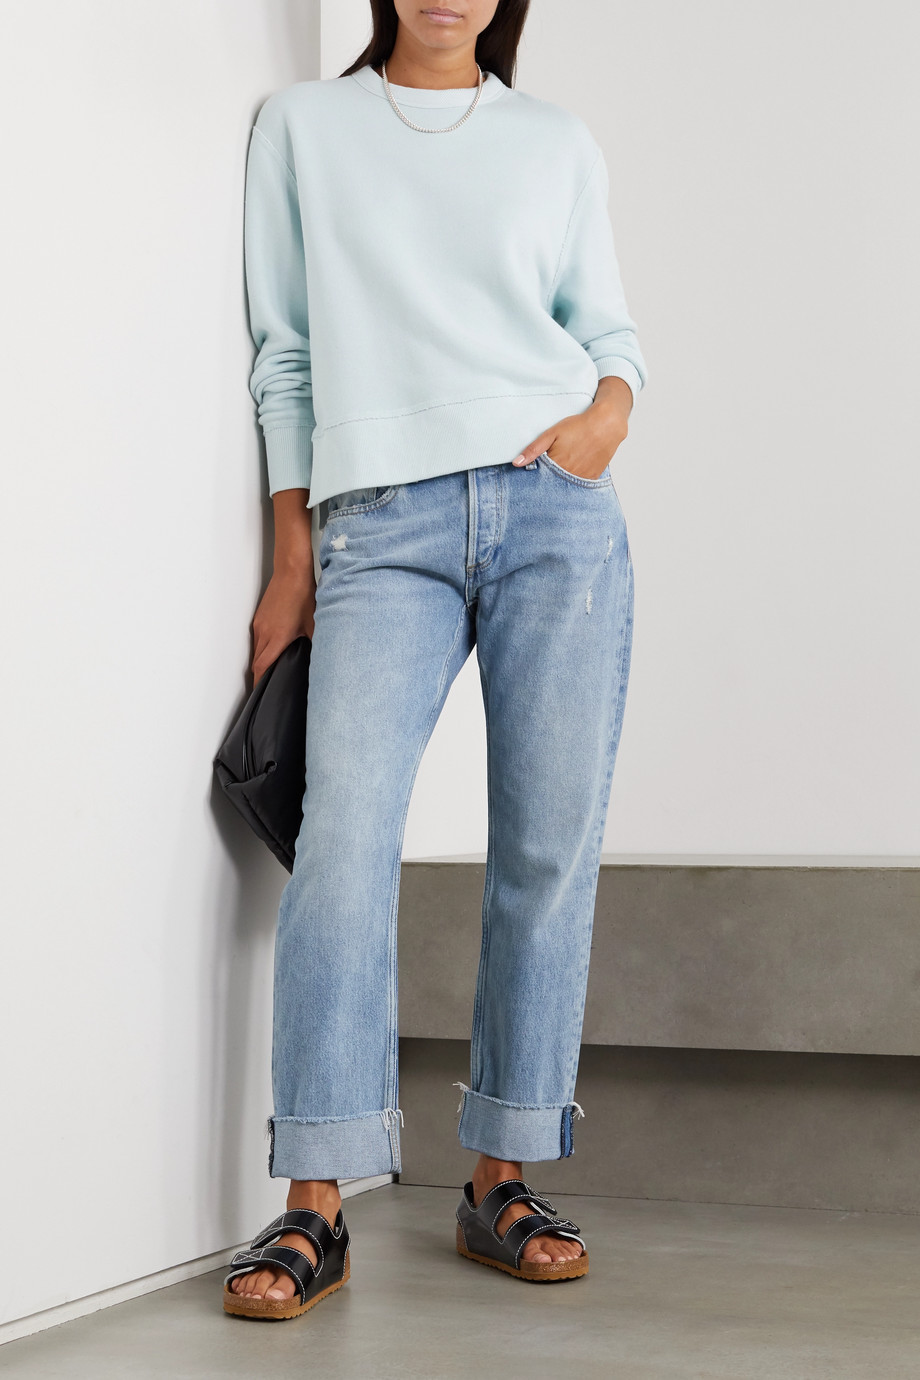 rag & bone Rosa halbhohe Jeans mit geradem Bein in Distressed-Optik